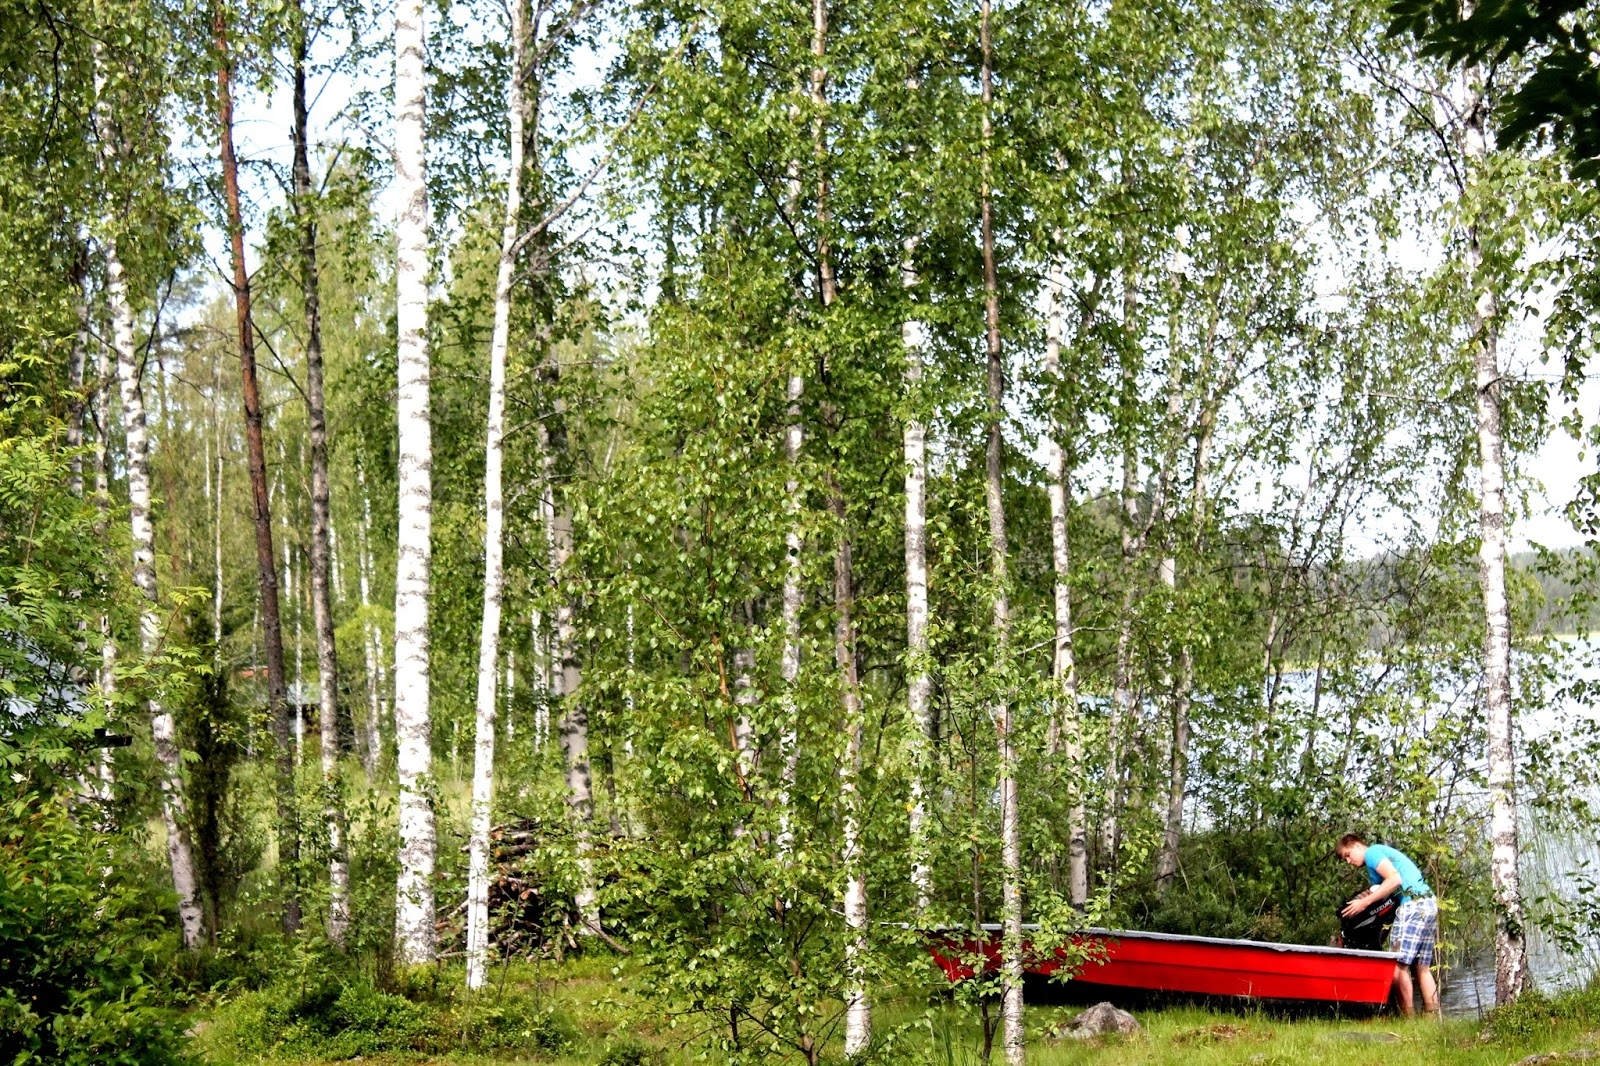 Finnish birches, woods by lake Saimaa, rowing a boat